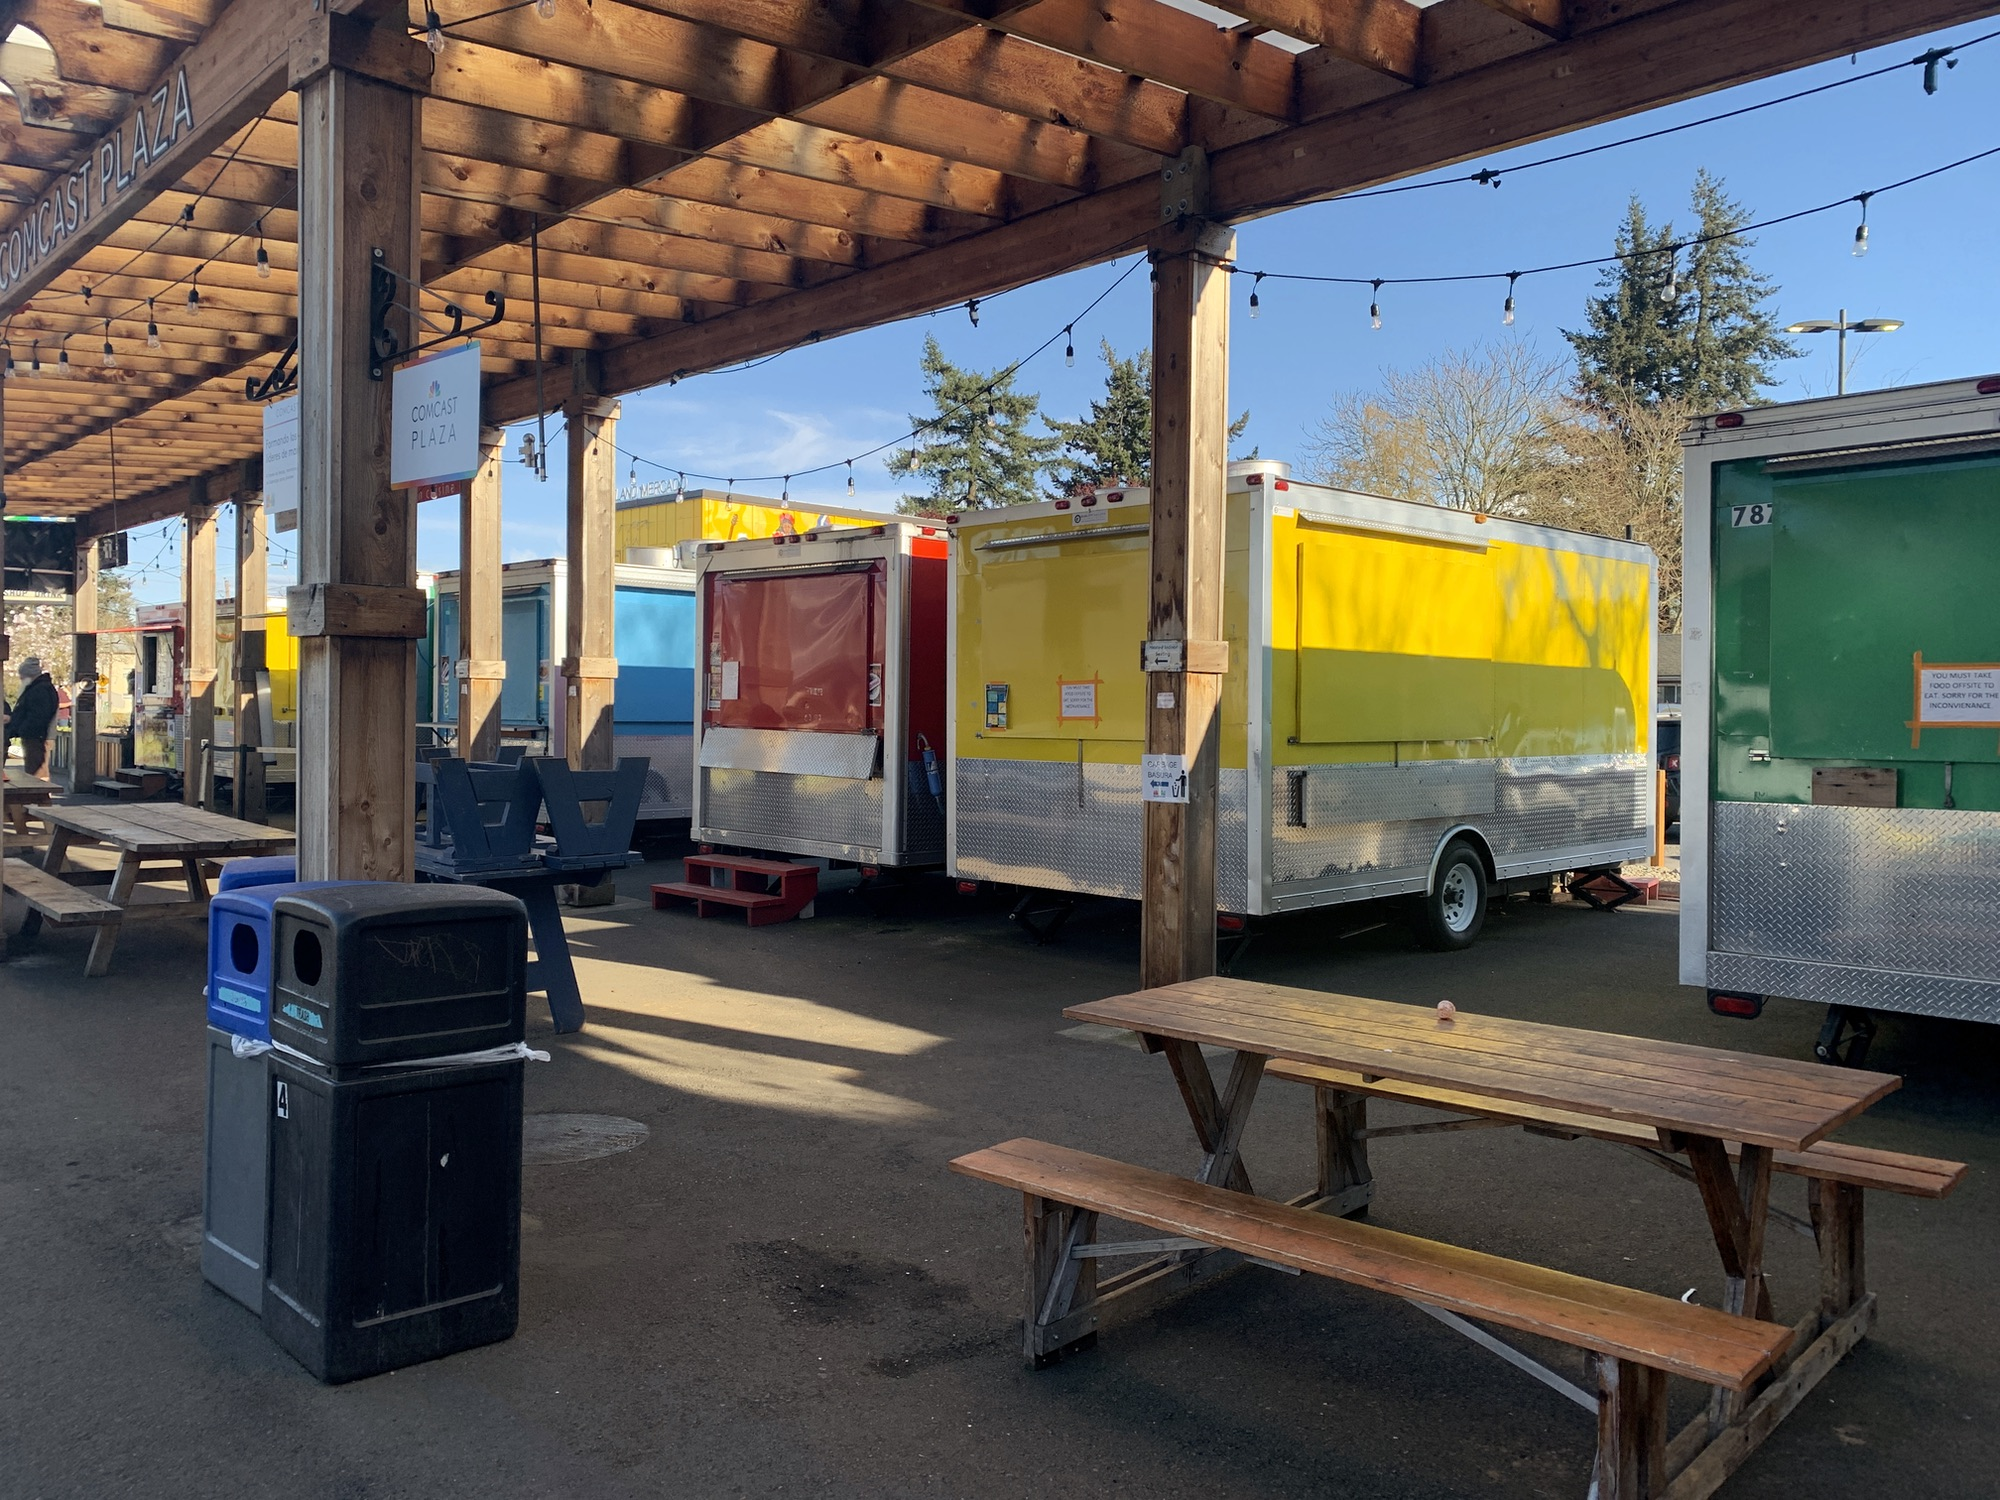 Mericado Food Carts, April 5th 2020